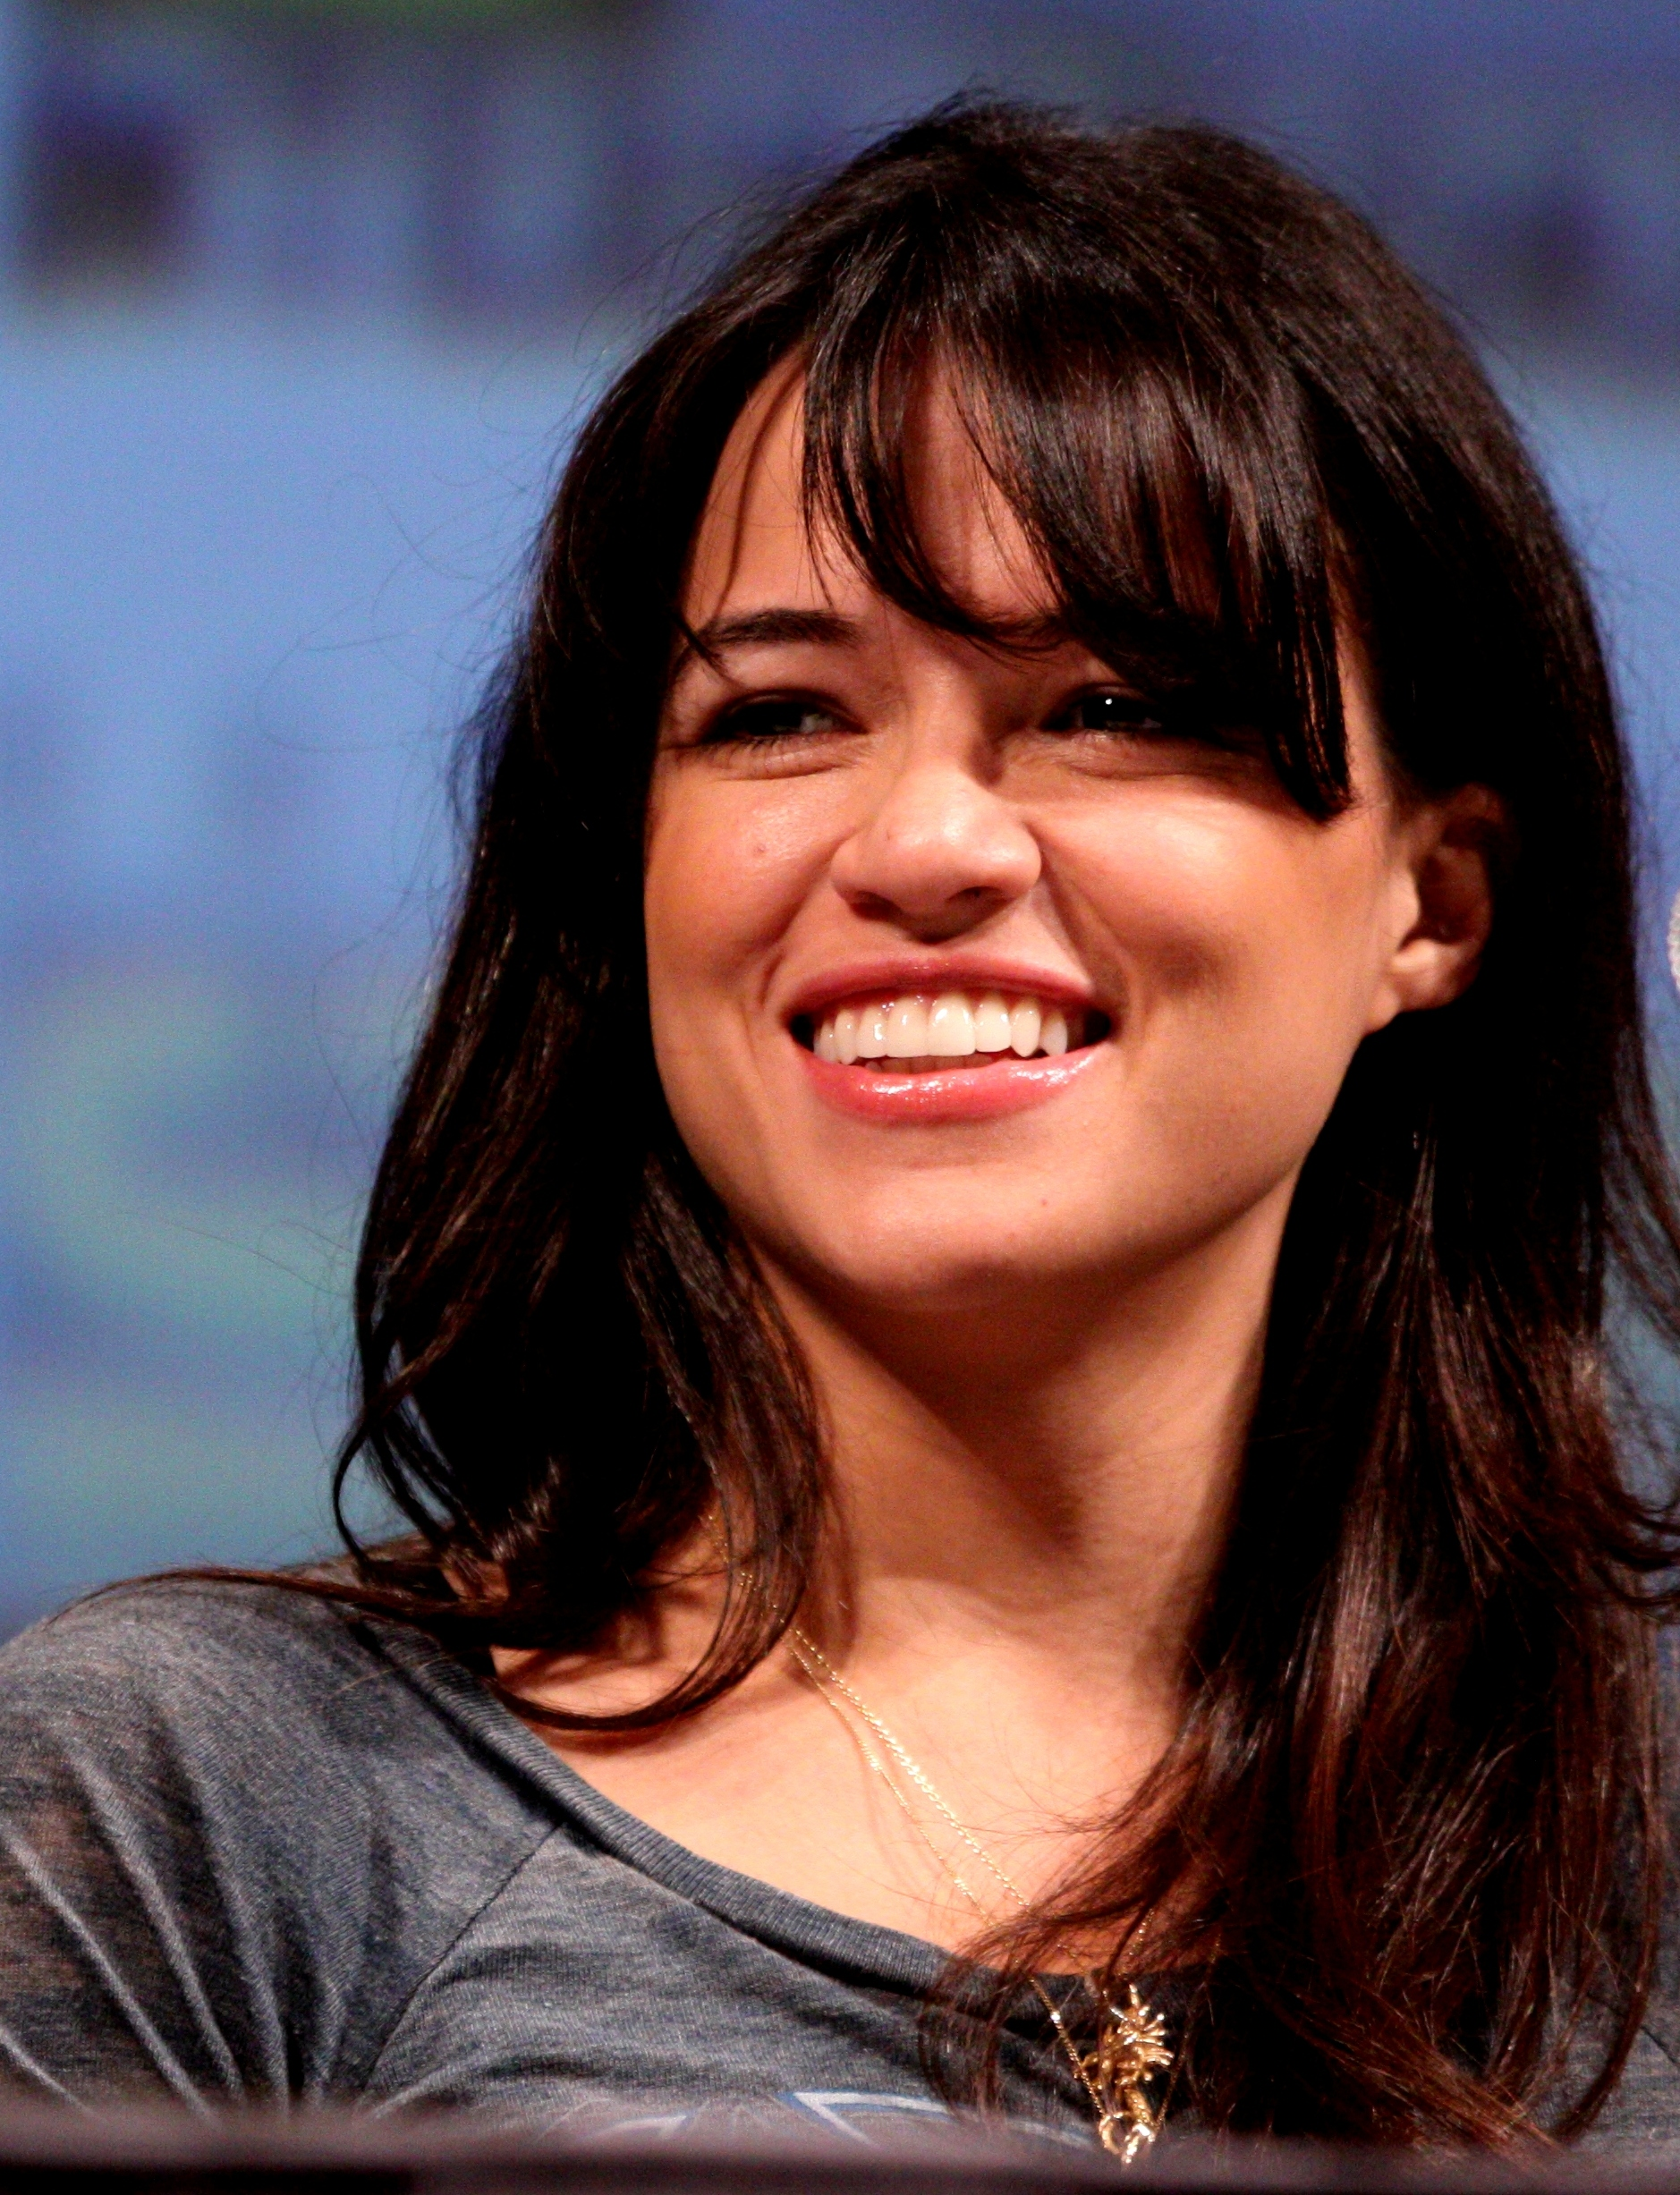 Images Michelle Rodriguez nudes (59 foto and video), Sexy, Sideboobs, Instagram, butt 2018